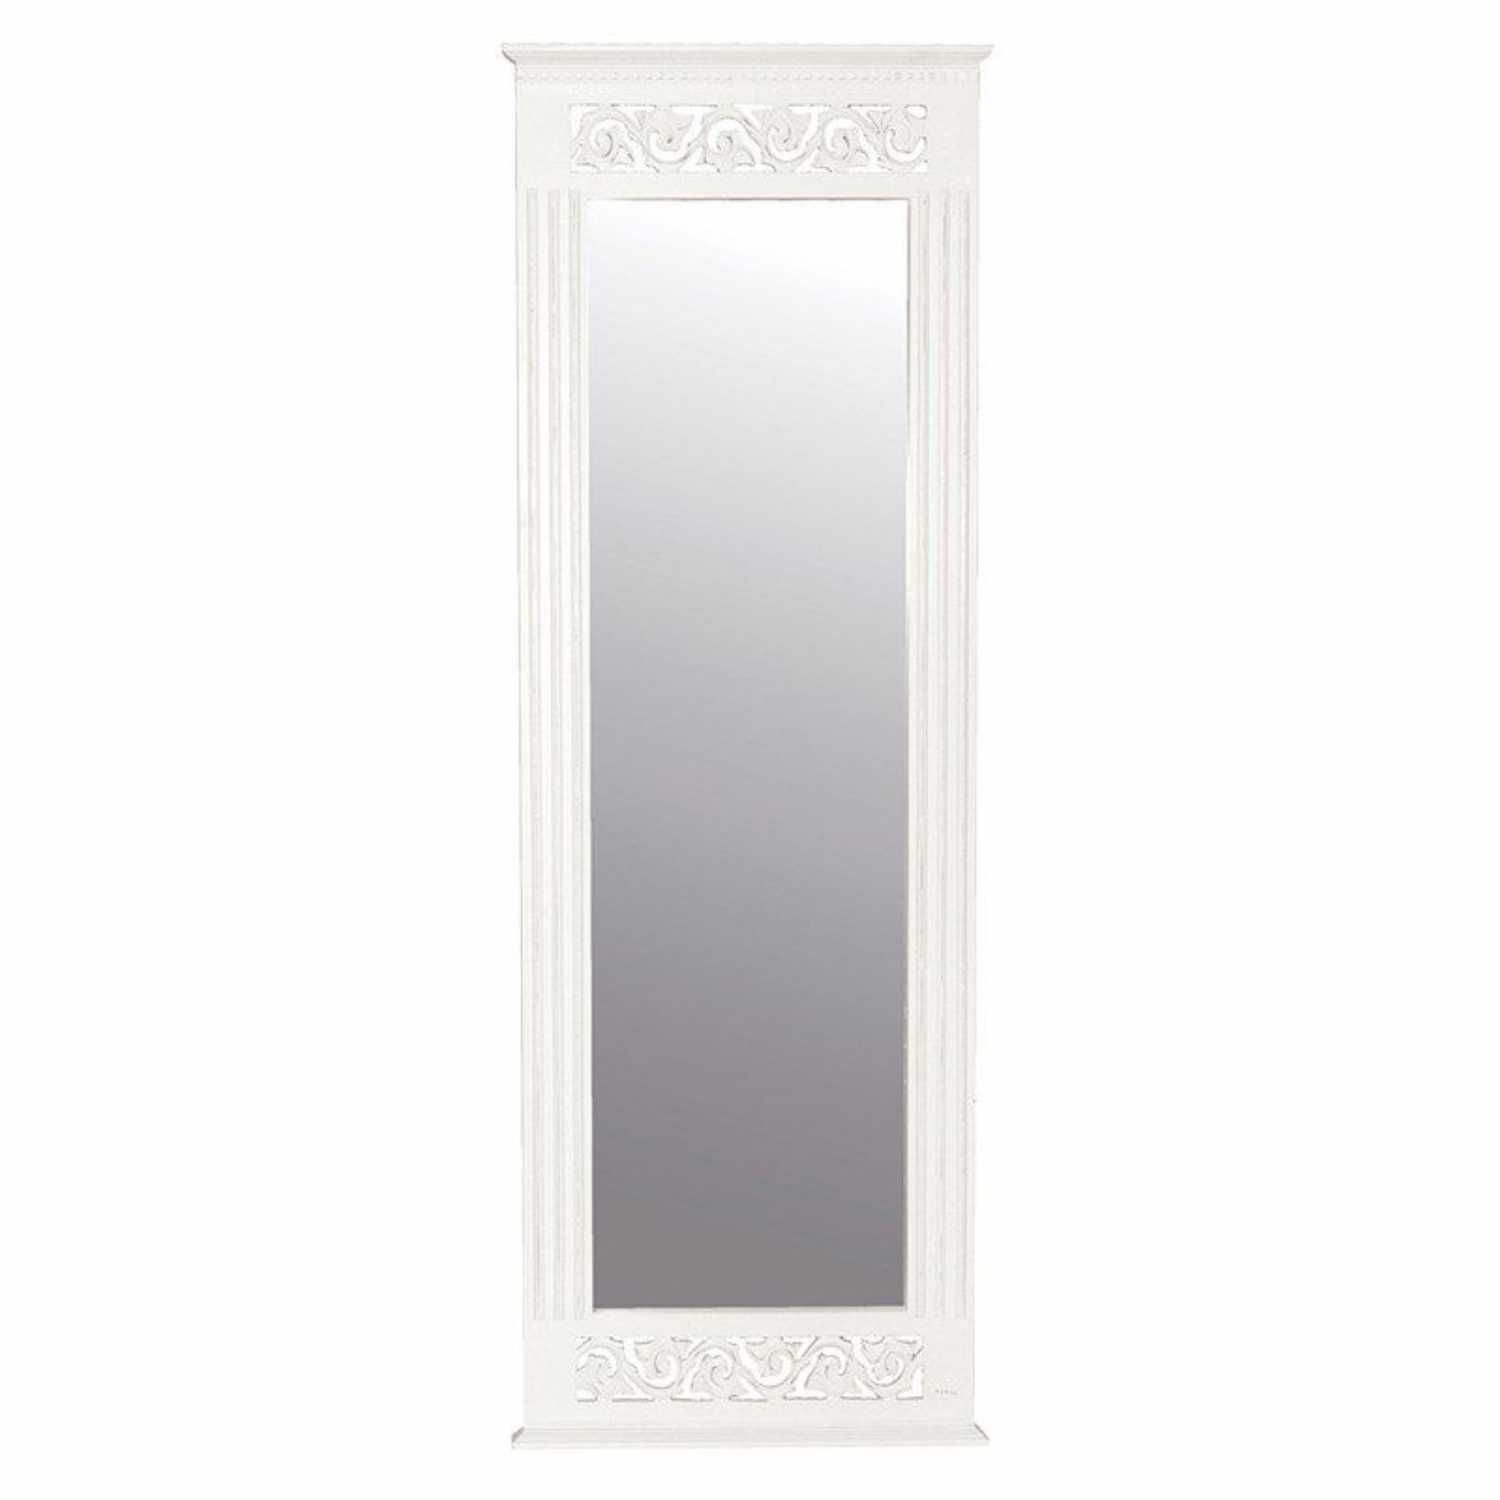 Tall Slim White Painted Belgravia Shab Chic Wall Dressing Mirror In Slim Wall Mirror (Image 14 of 15)